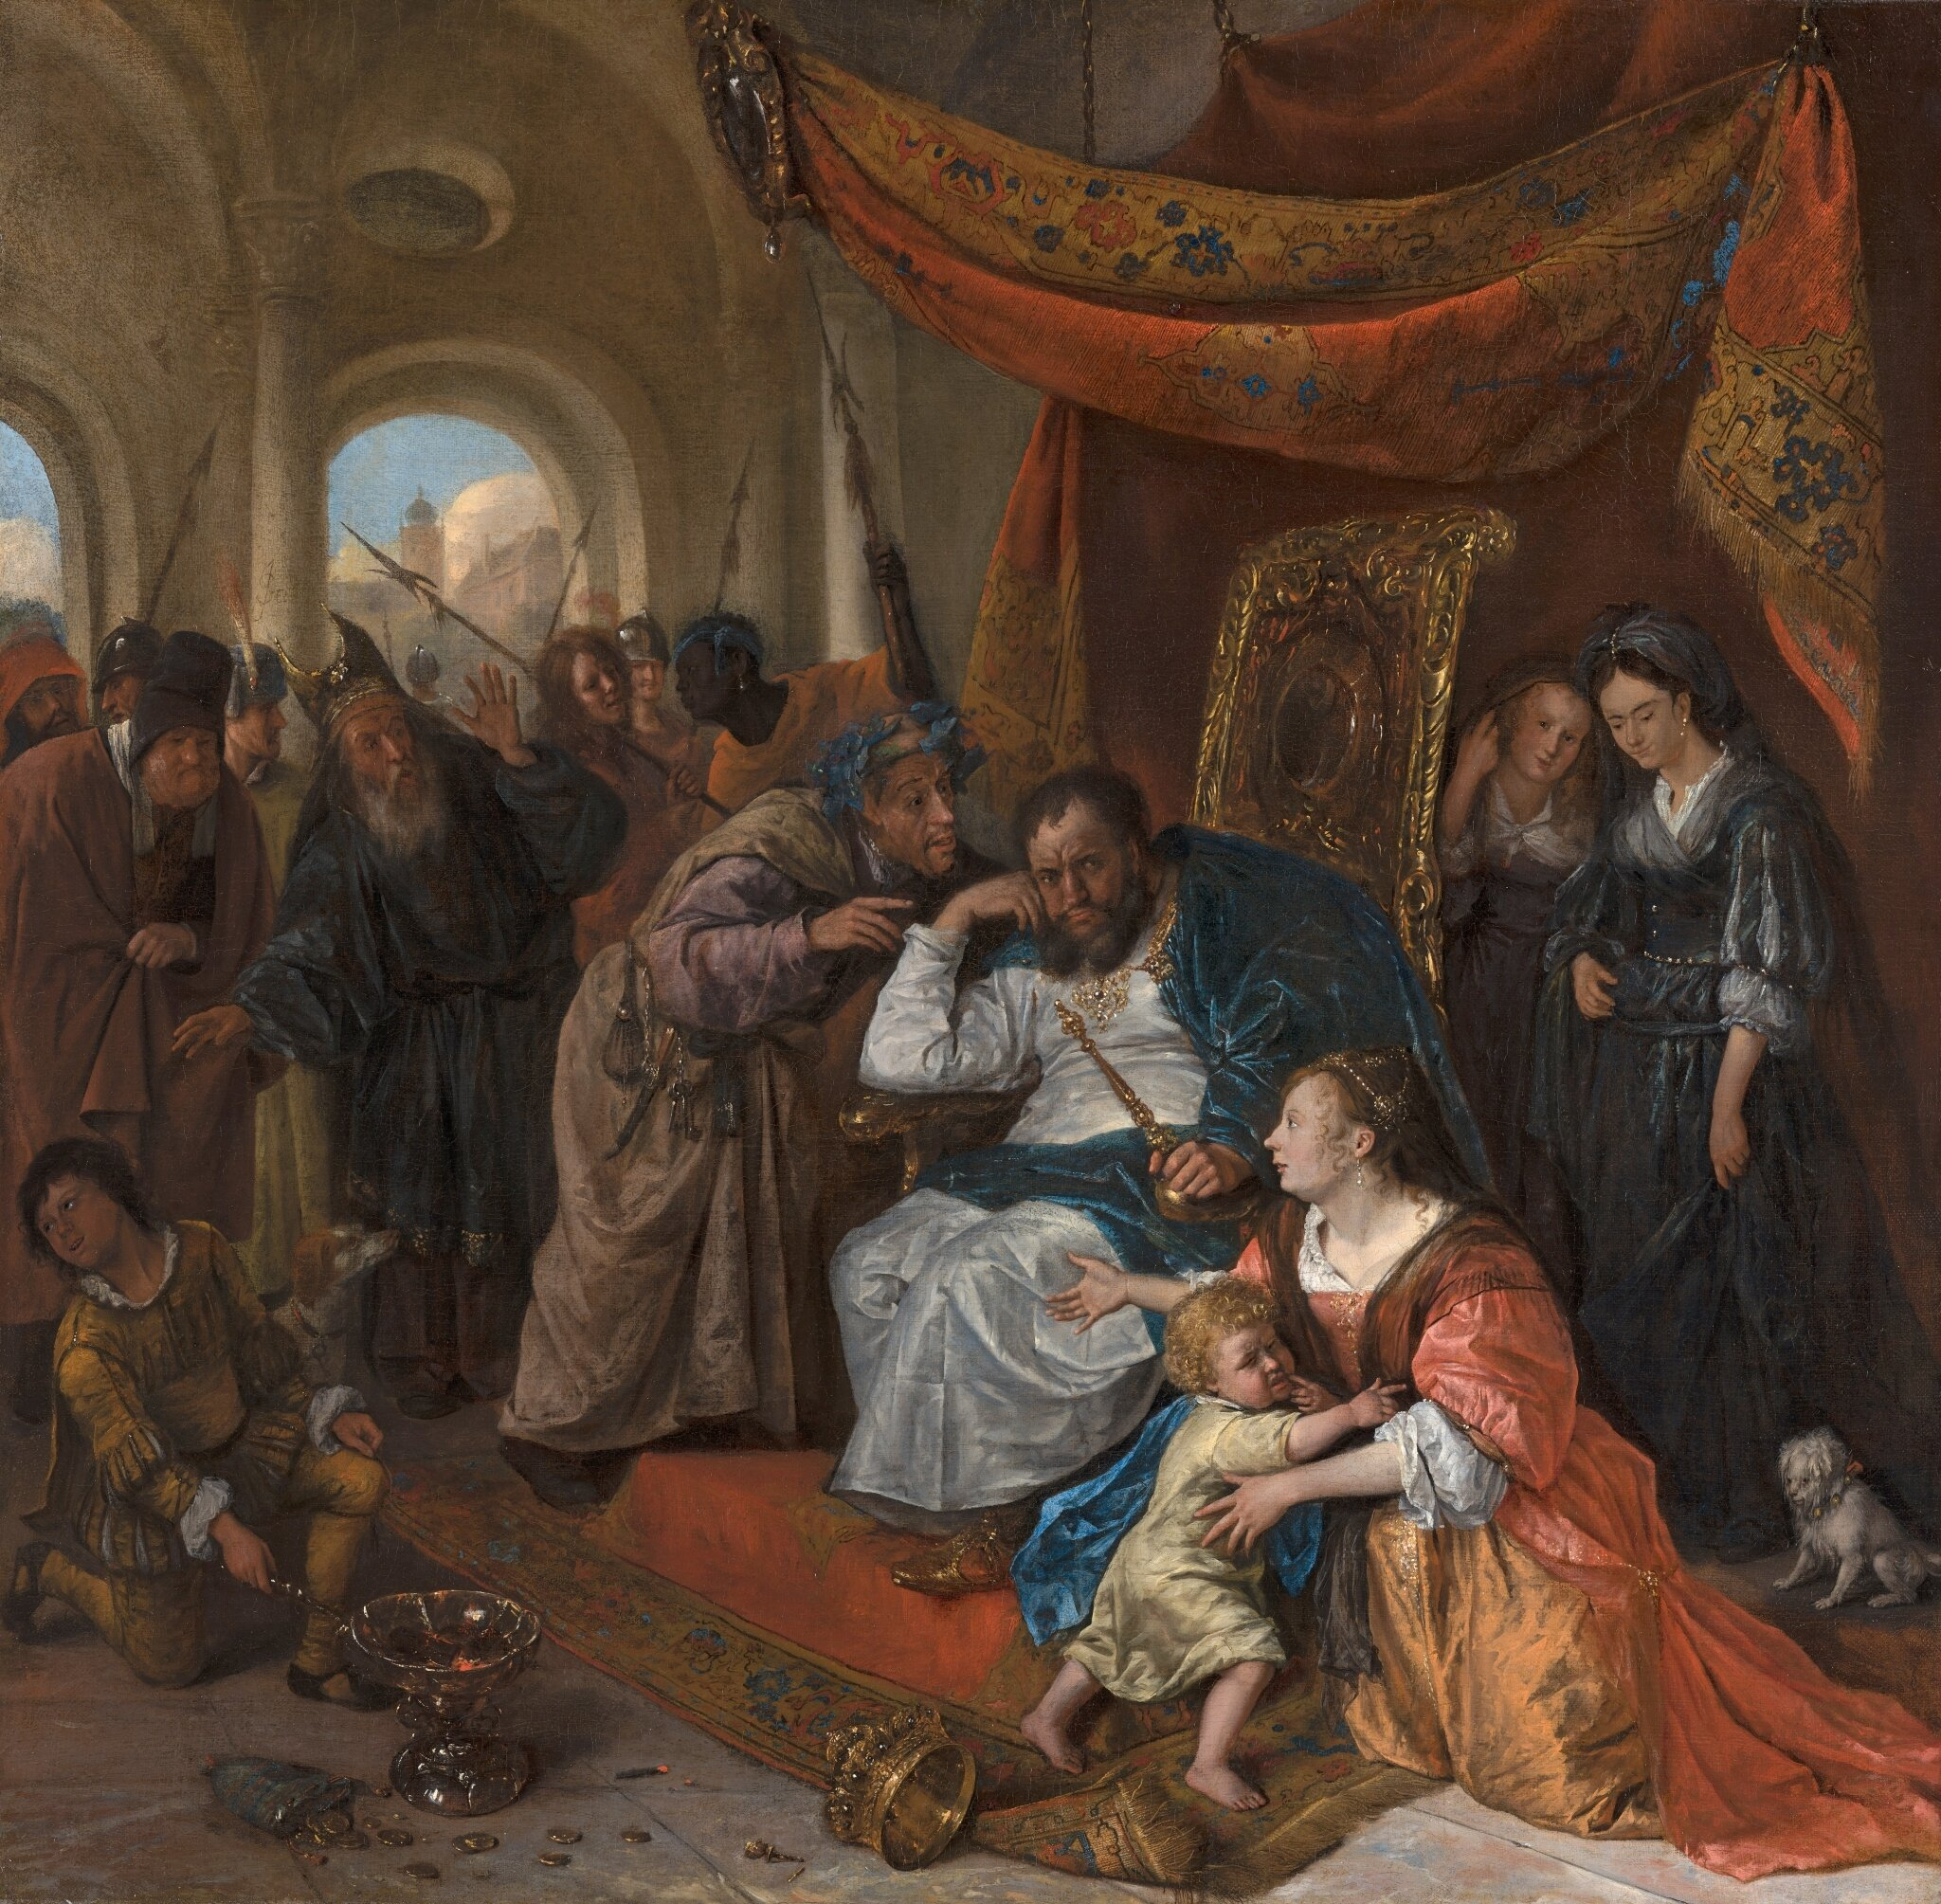 Mauritshuis exhibition reveals an unfamiliar side of Jan Steen